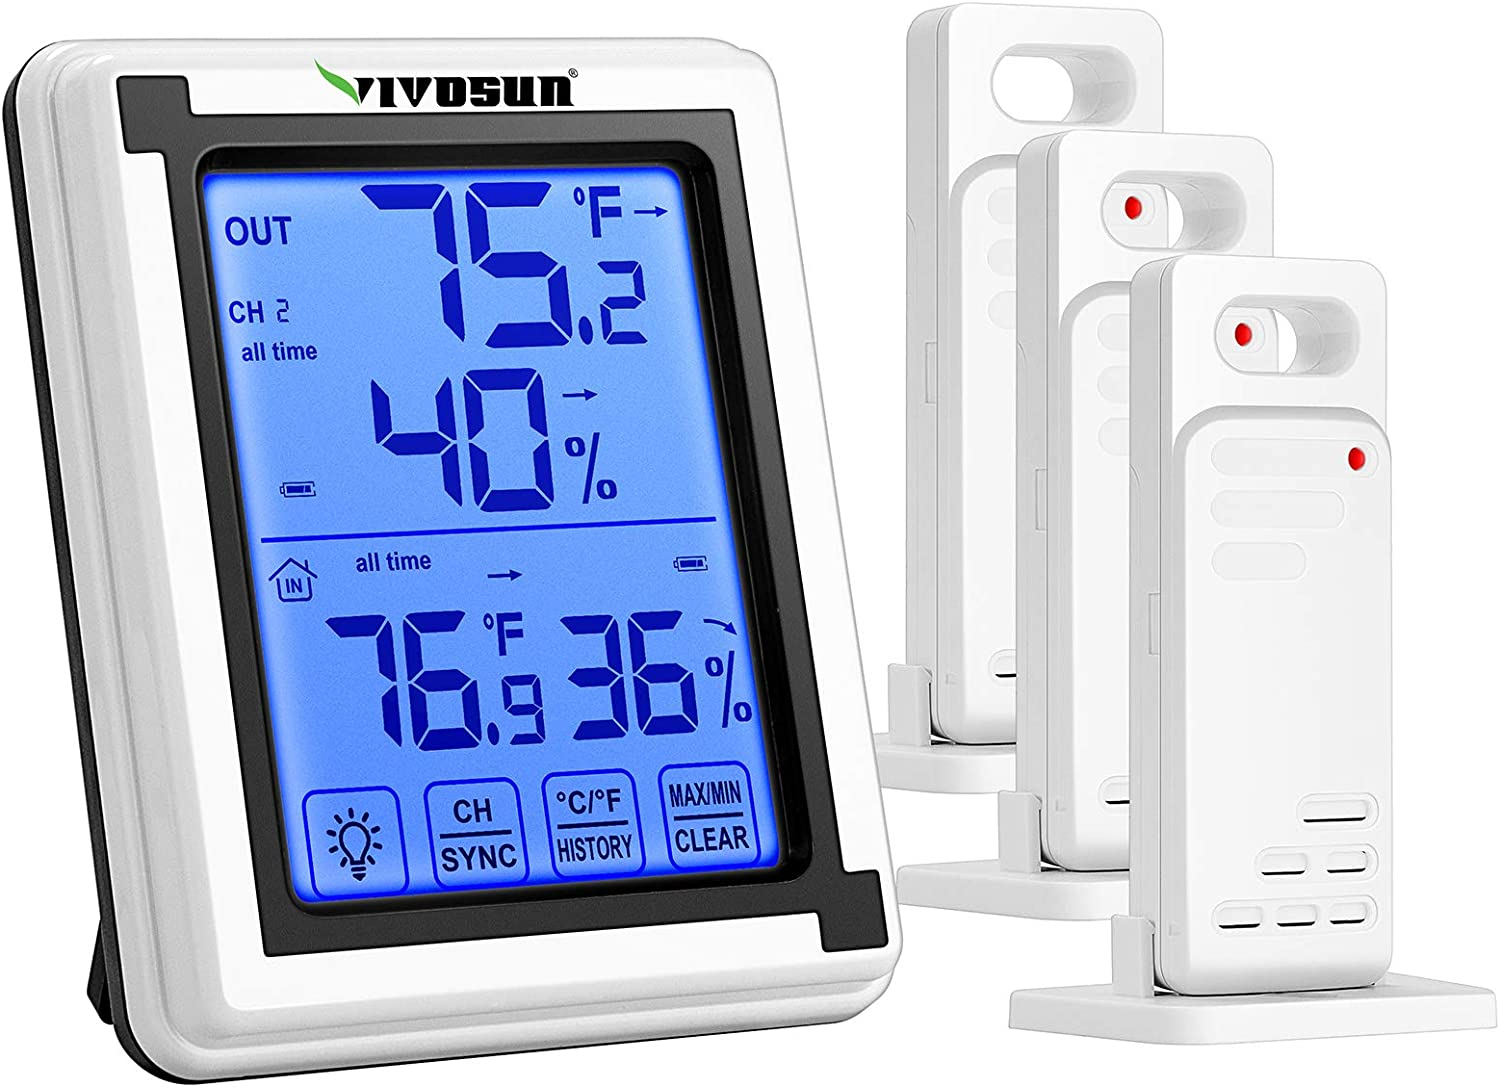 VIVOSUN Wireless Thermometer and Hygrometer with 3 Remote Sensors, Digital Hygrometer Indoor Outdoor Thermometer Humidity Monitor with Touchscreen LCD Backlight